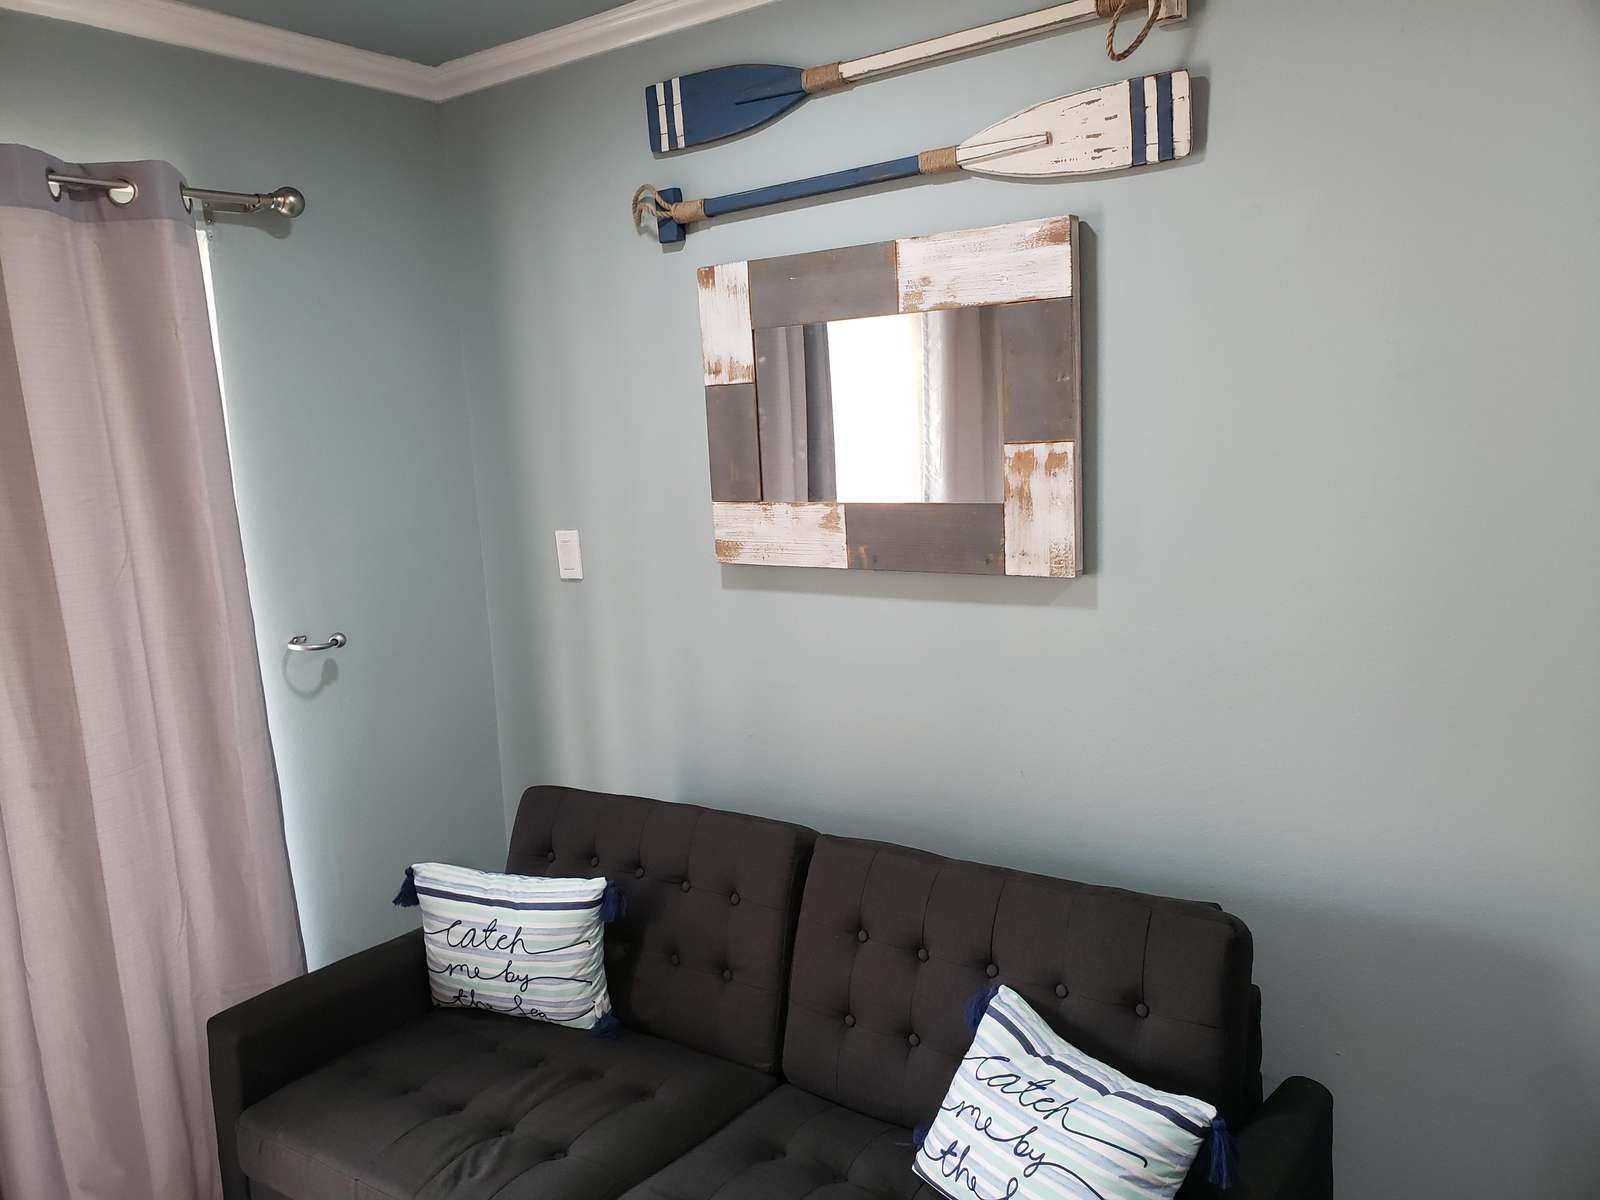 comfortable seating provided and a mounted 50 inch smart tv